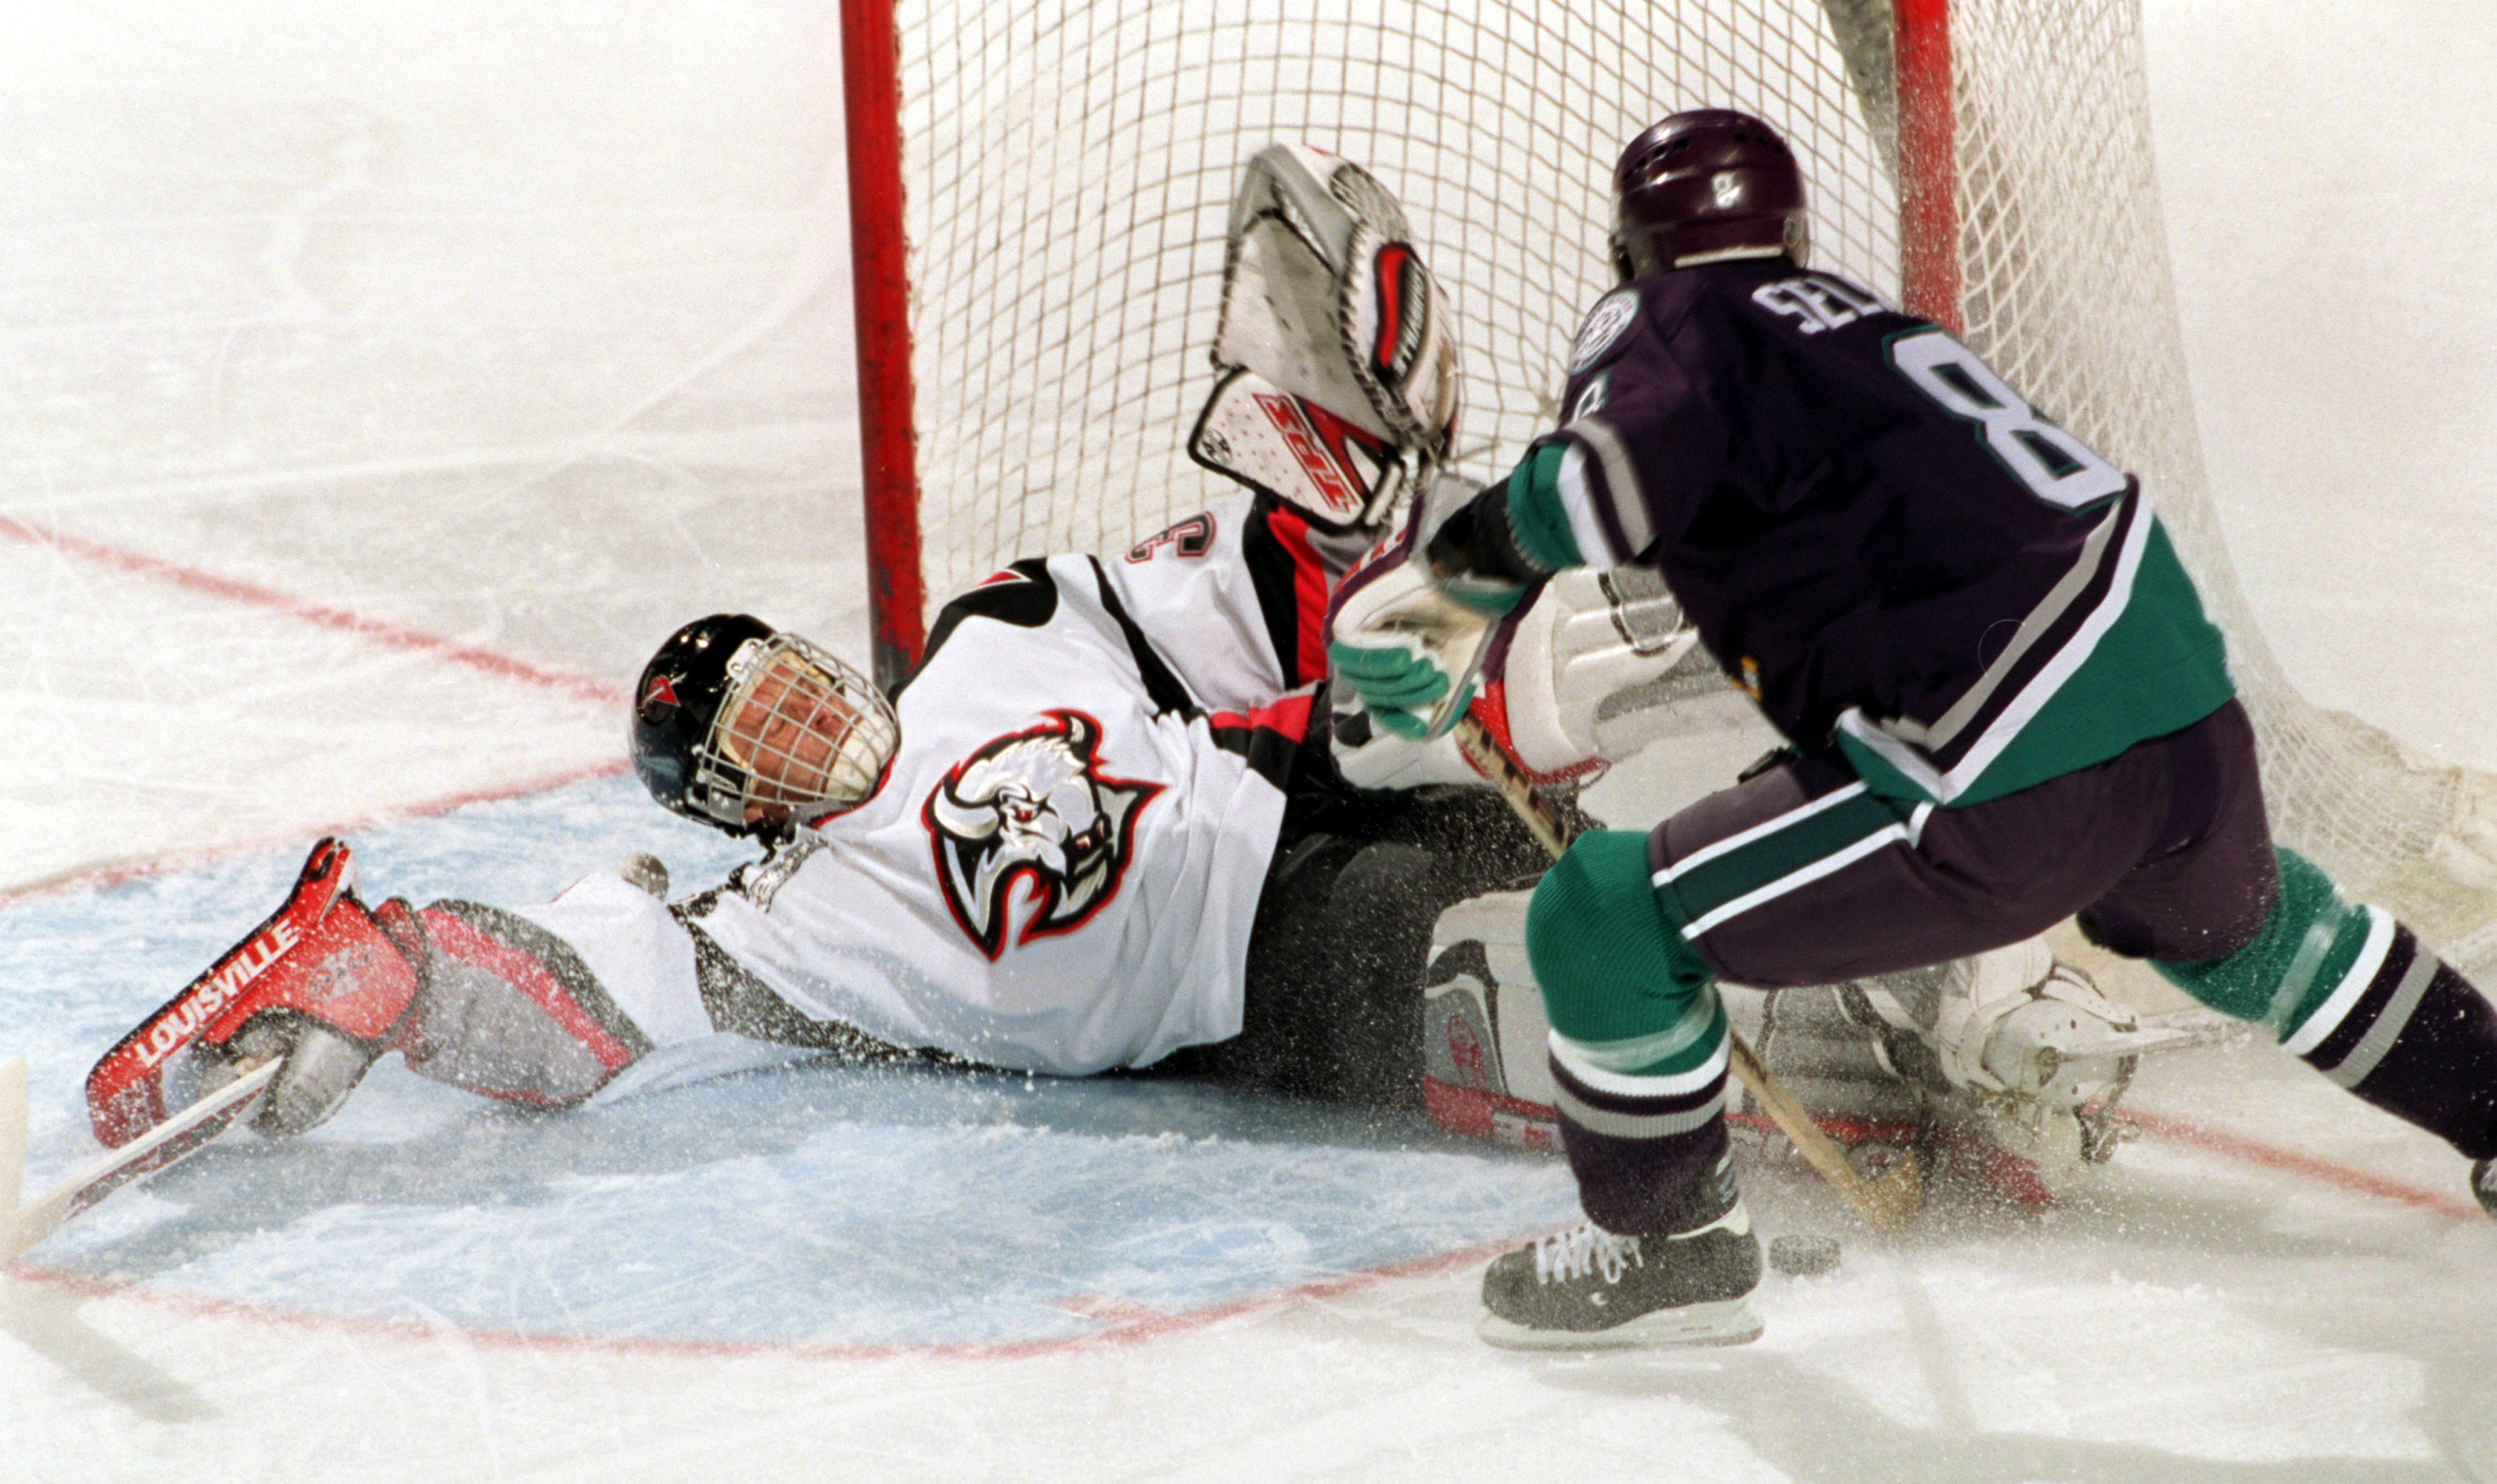 Buffalo Sabres Dominik Hasek denies Anaheim's Teemu Selanne, one of the many players Hasek stonewalled during his Hall of Fame career. Hasek led the league in save percentage six straight seasons and still holds the Sabres record for career shutouts (55). (Harry Scull Jr./Buffalo News file photo)